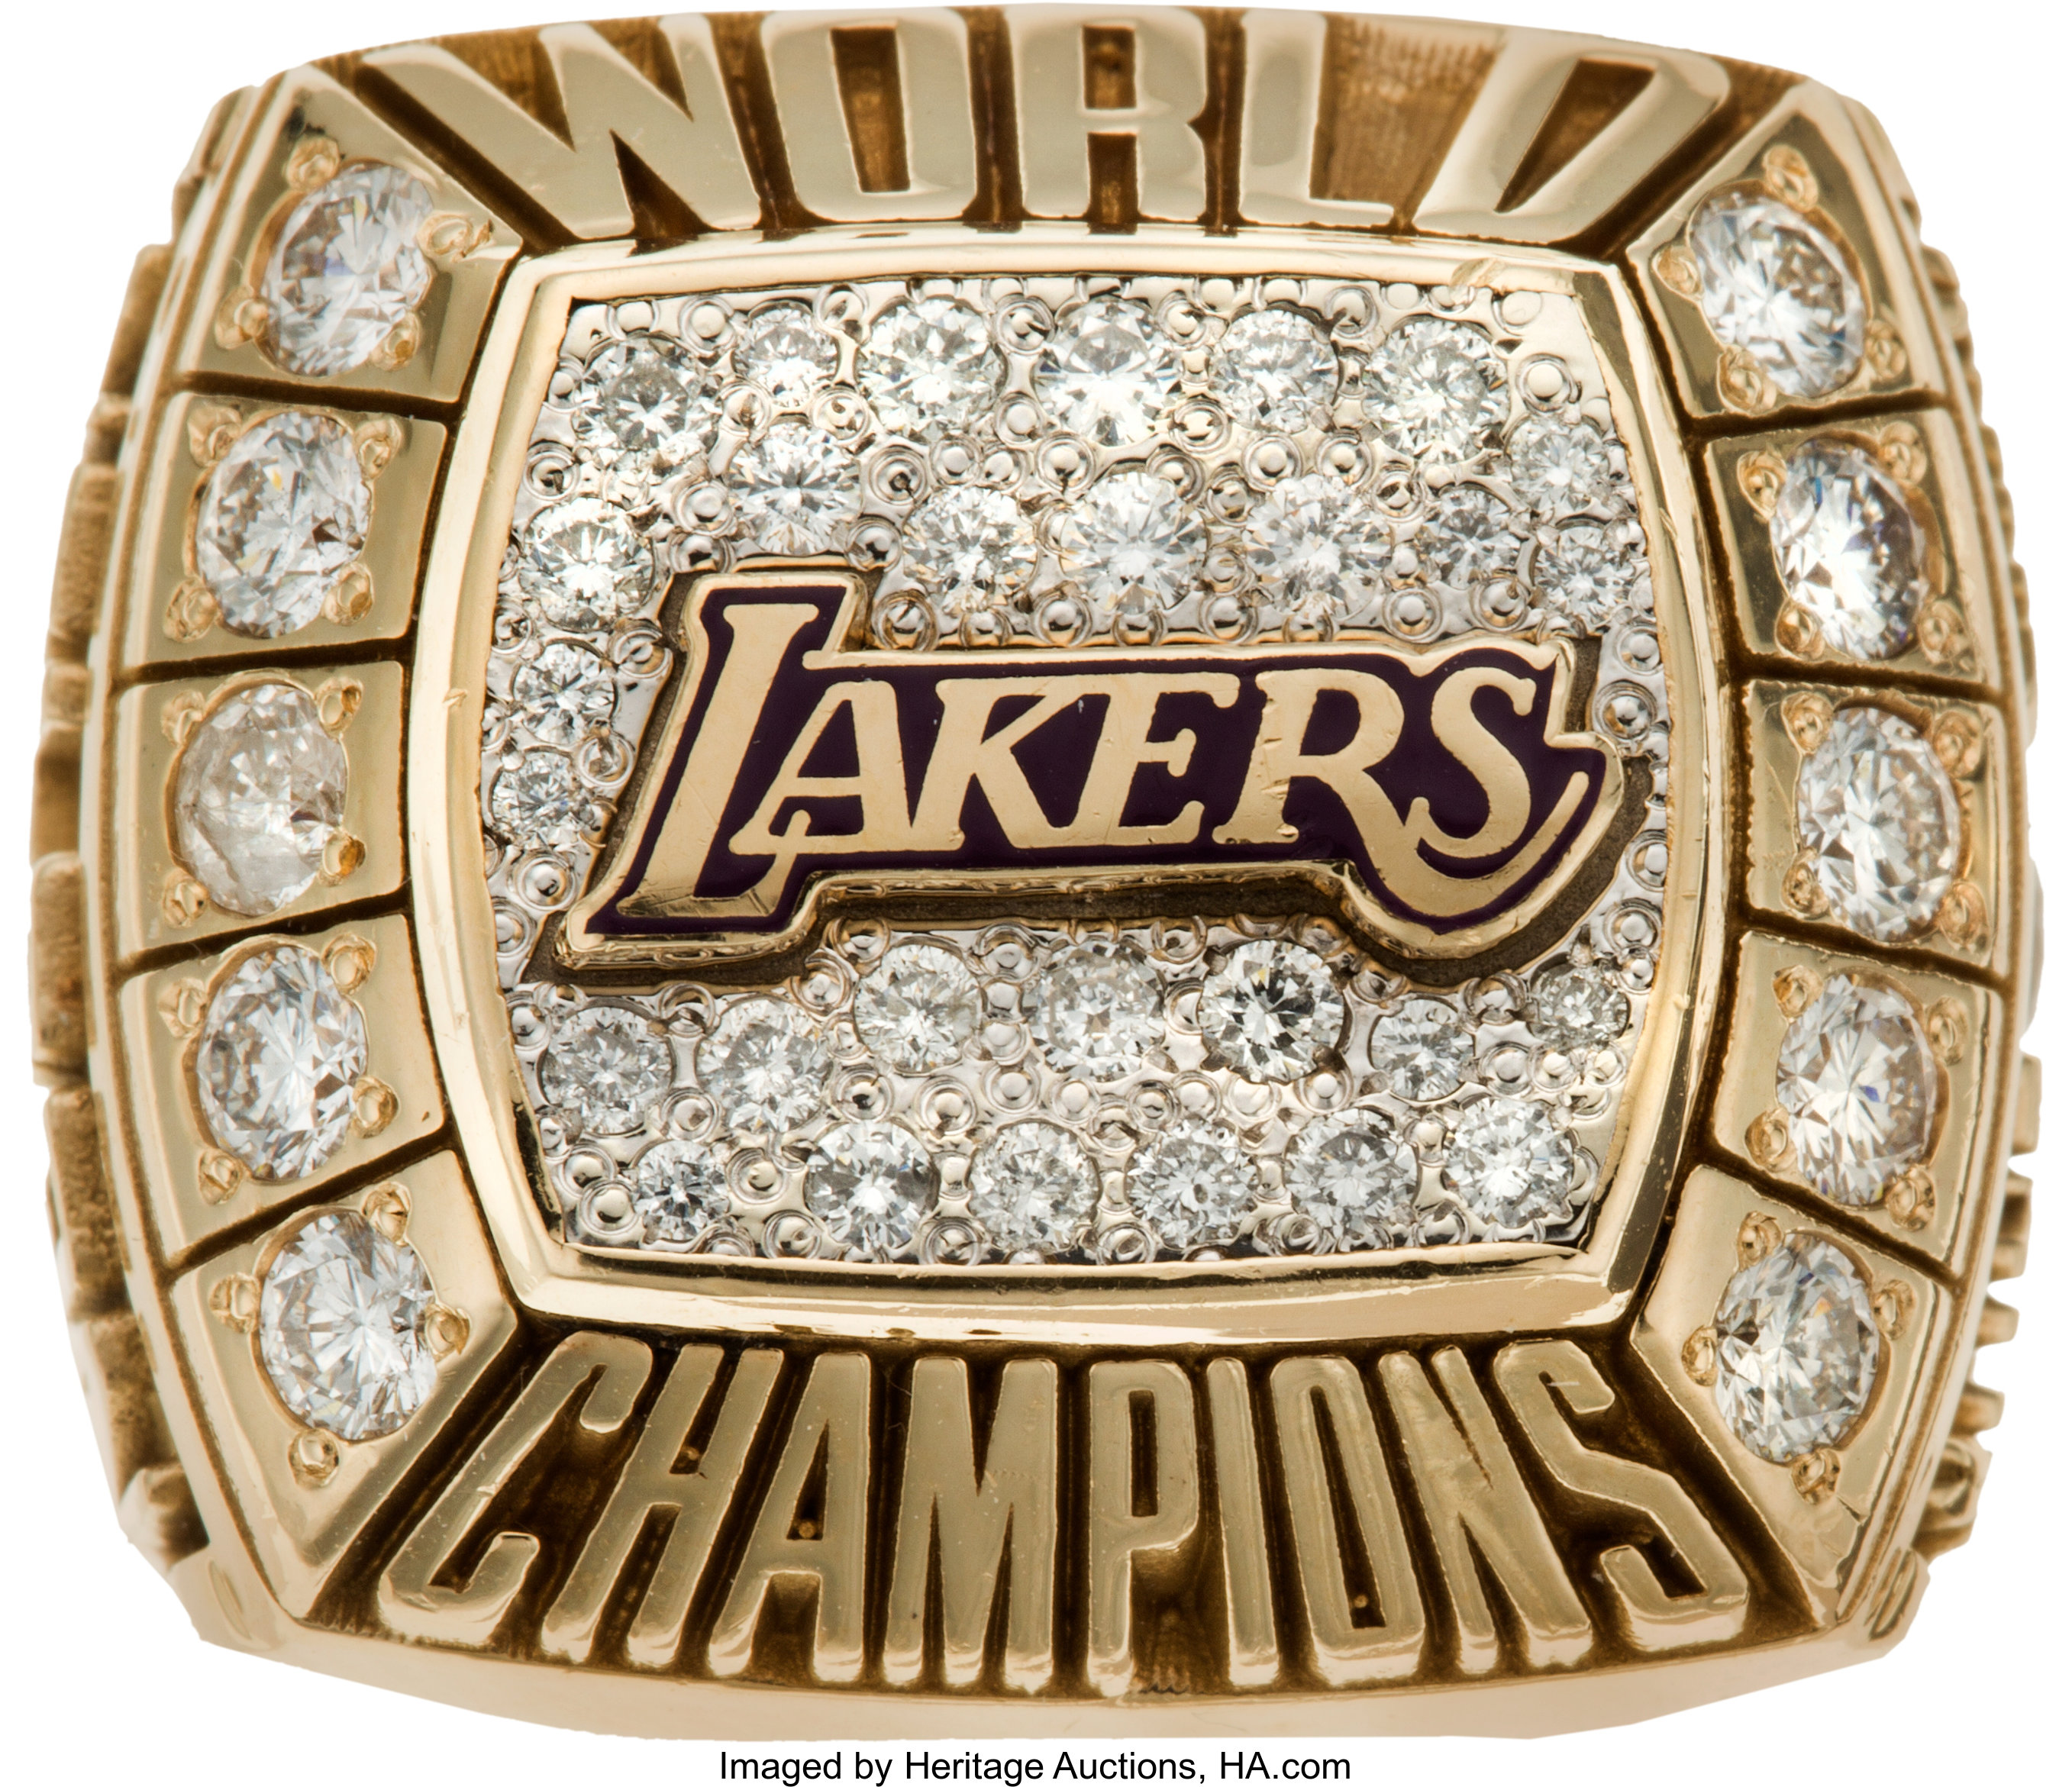 2000 Los Angeles Lakers Nba Championship Ring Basketball Lot 80158 Heritage Auctions